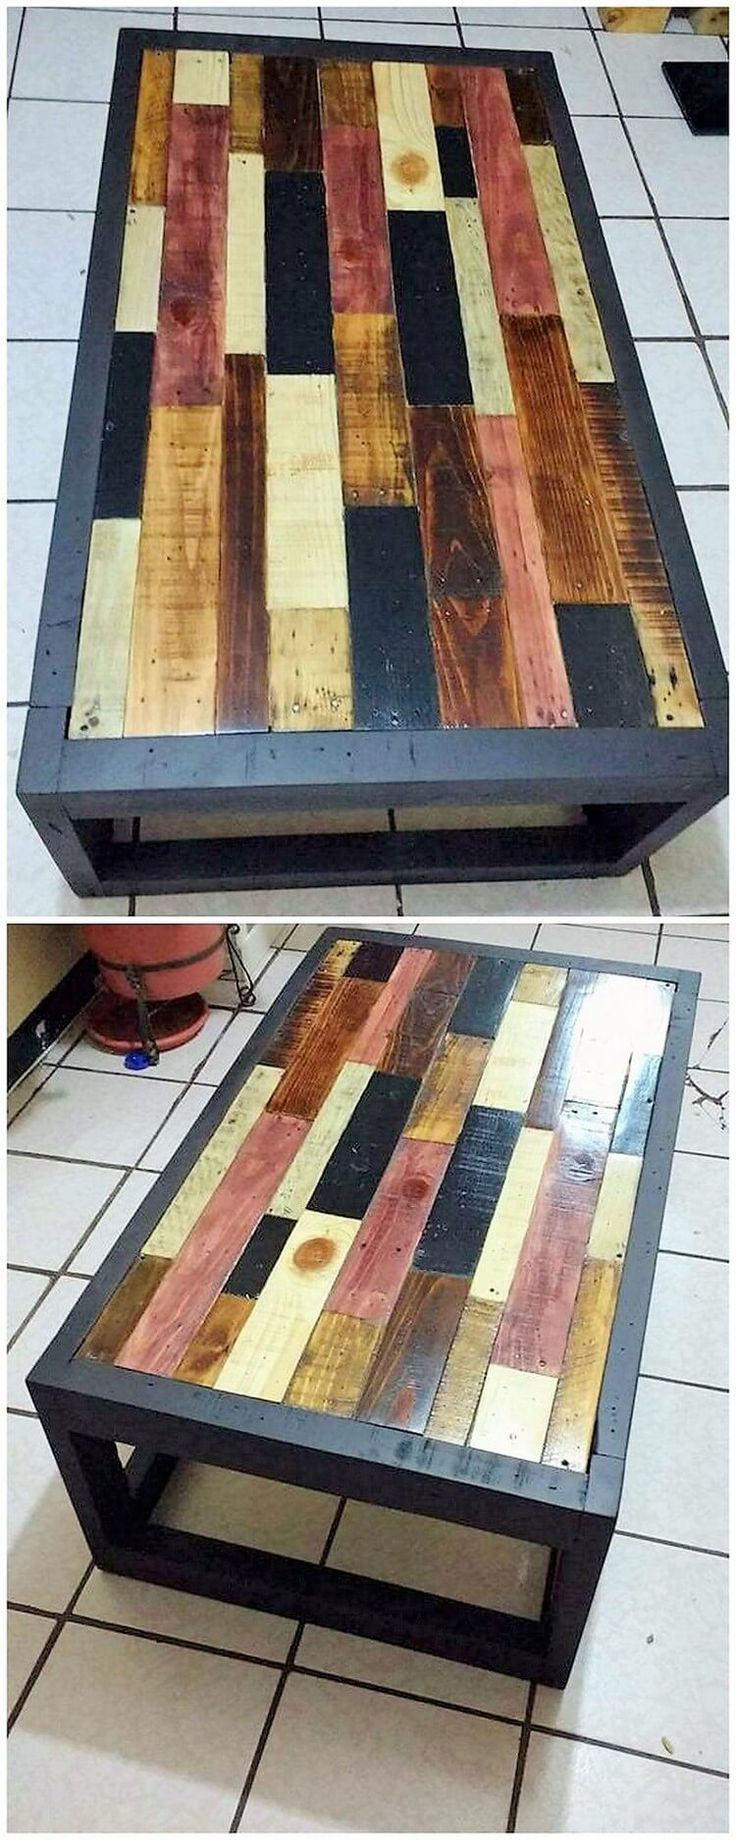 Wooden transport pallets have become increasingly popular for diy - Creative Diy Shipping Wood Pallets Repurposing Ideas